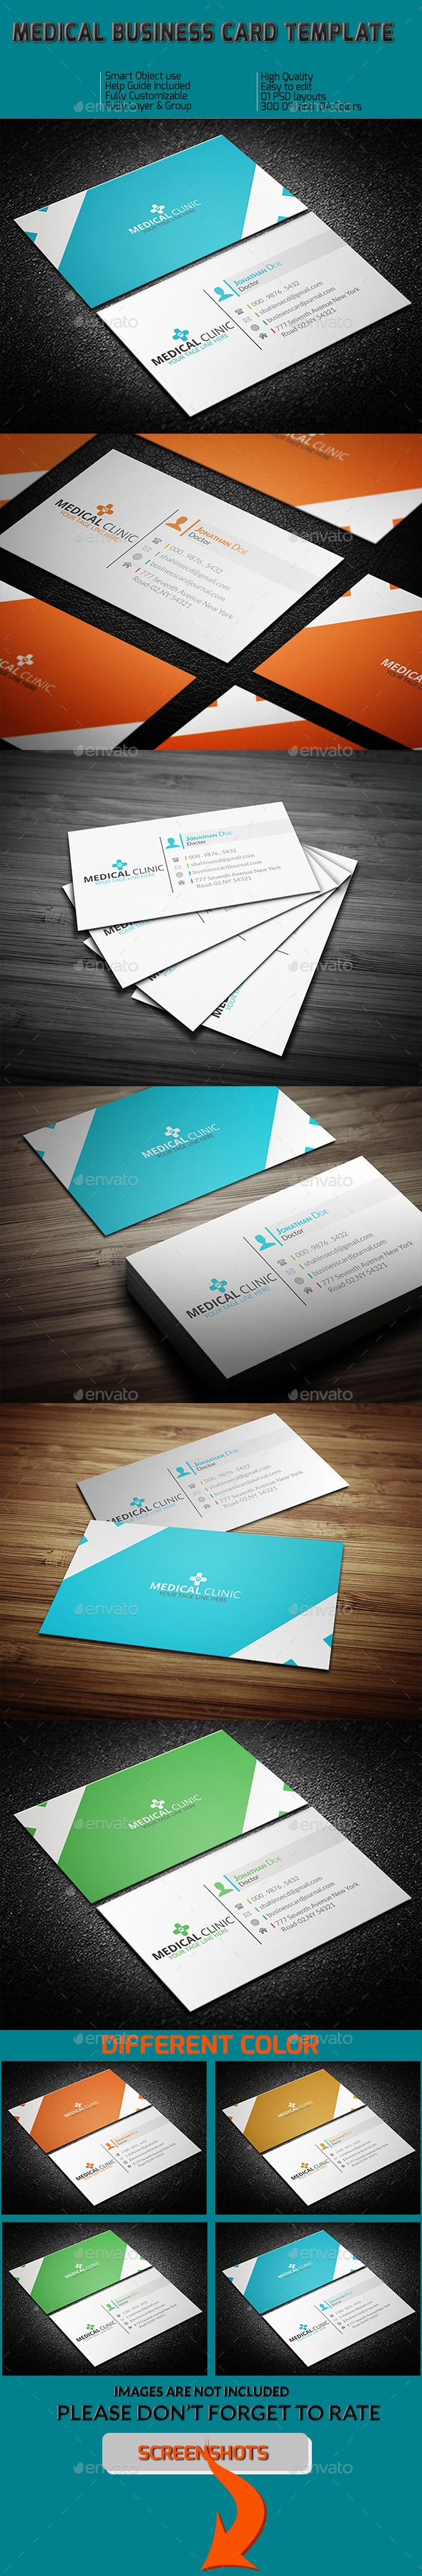 8 Best Disabled Images On Pinterest Corporate Identity Charts And